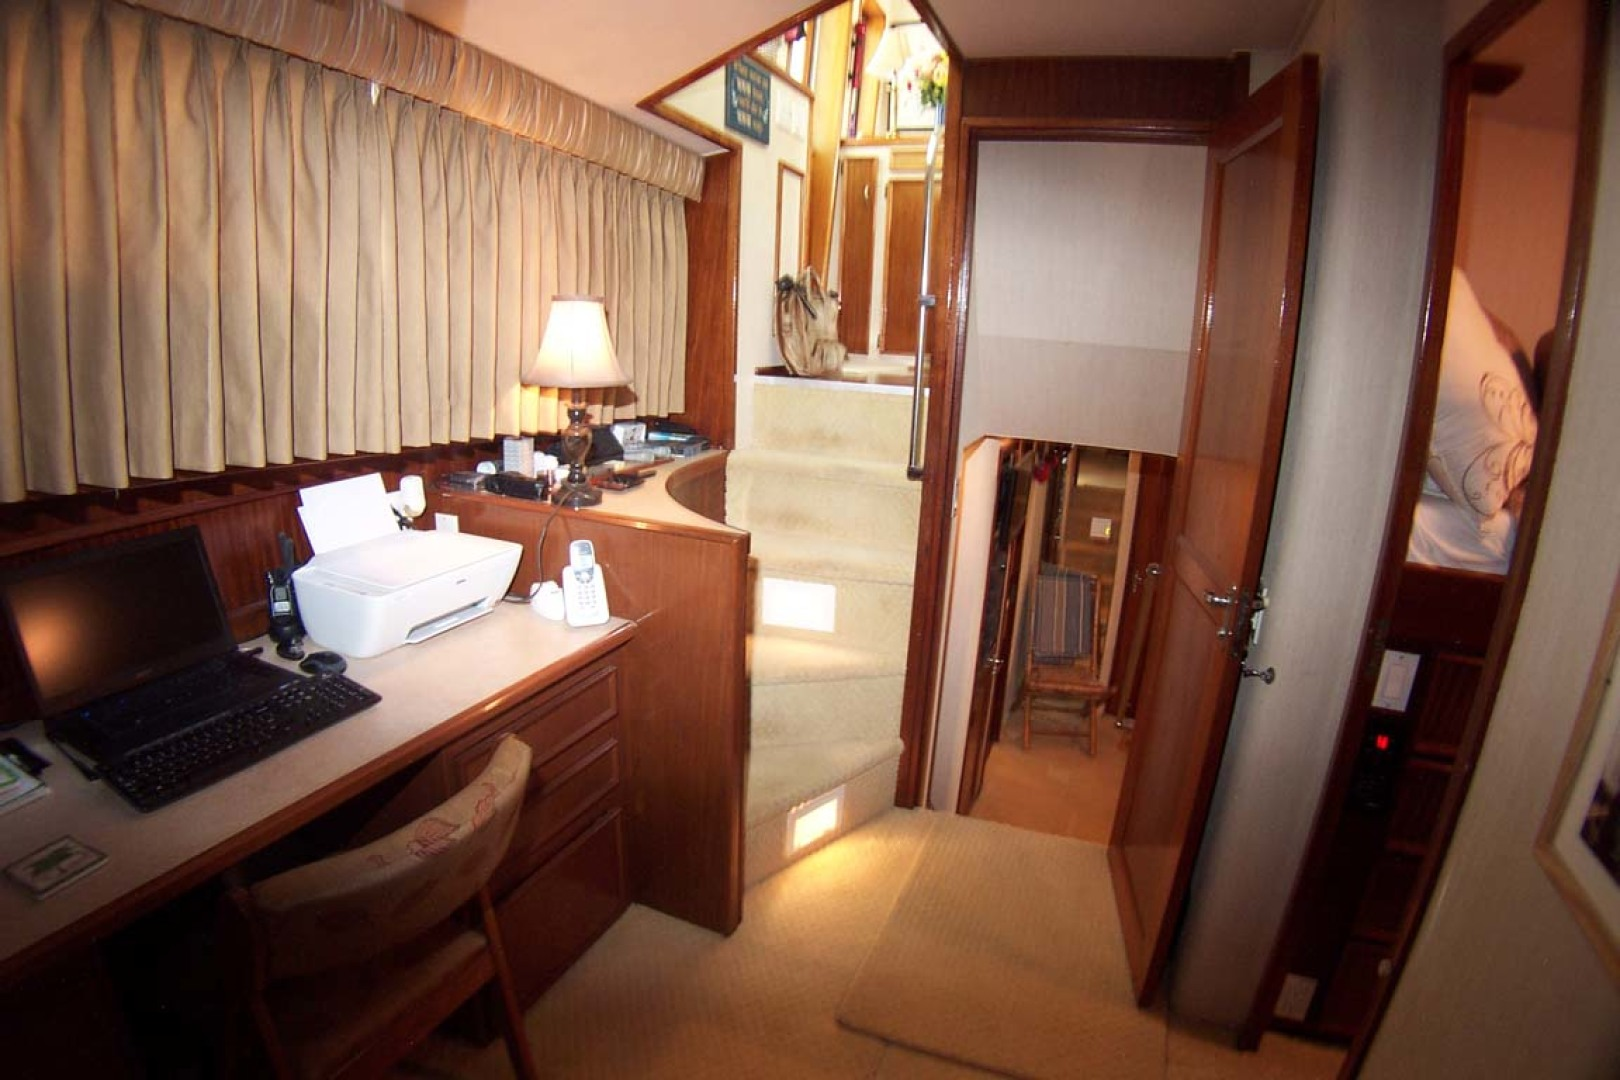 Hatteras-61 Motoryacht 1980-Piece A Cake Ft. Pierce-Florida-United States-Office/Entrance to VIP Stateroom-1094516 | Thumbnail